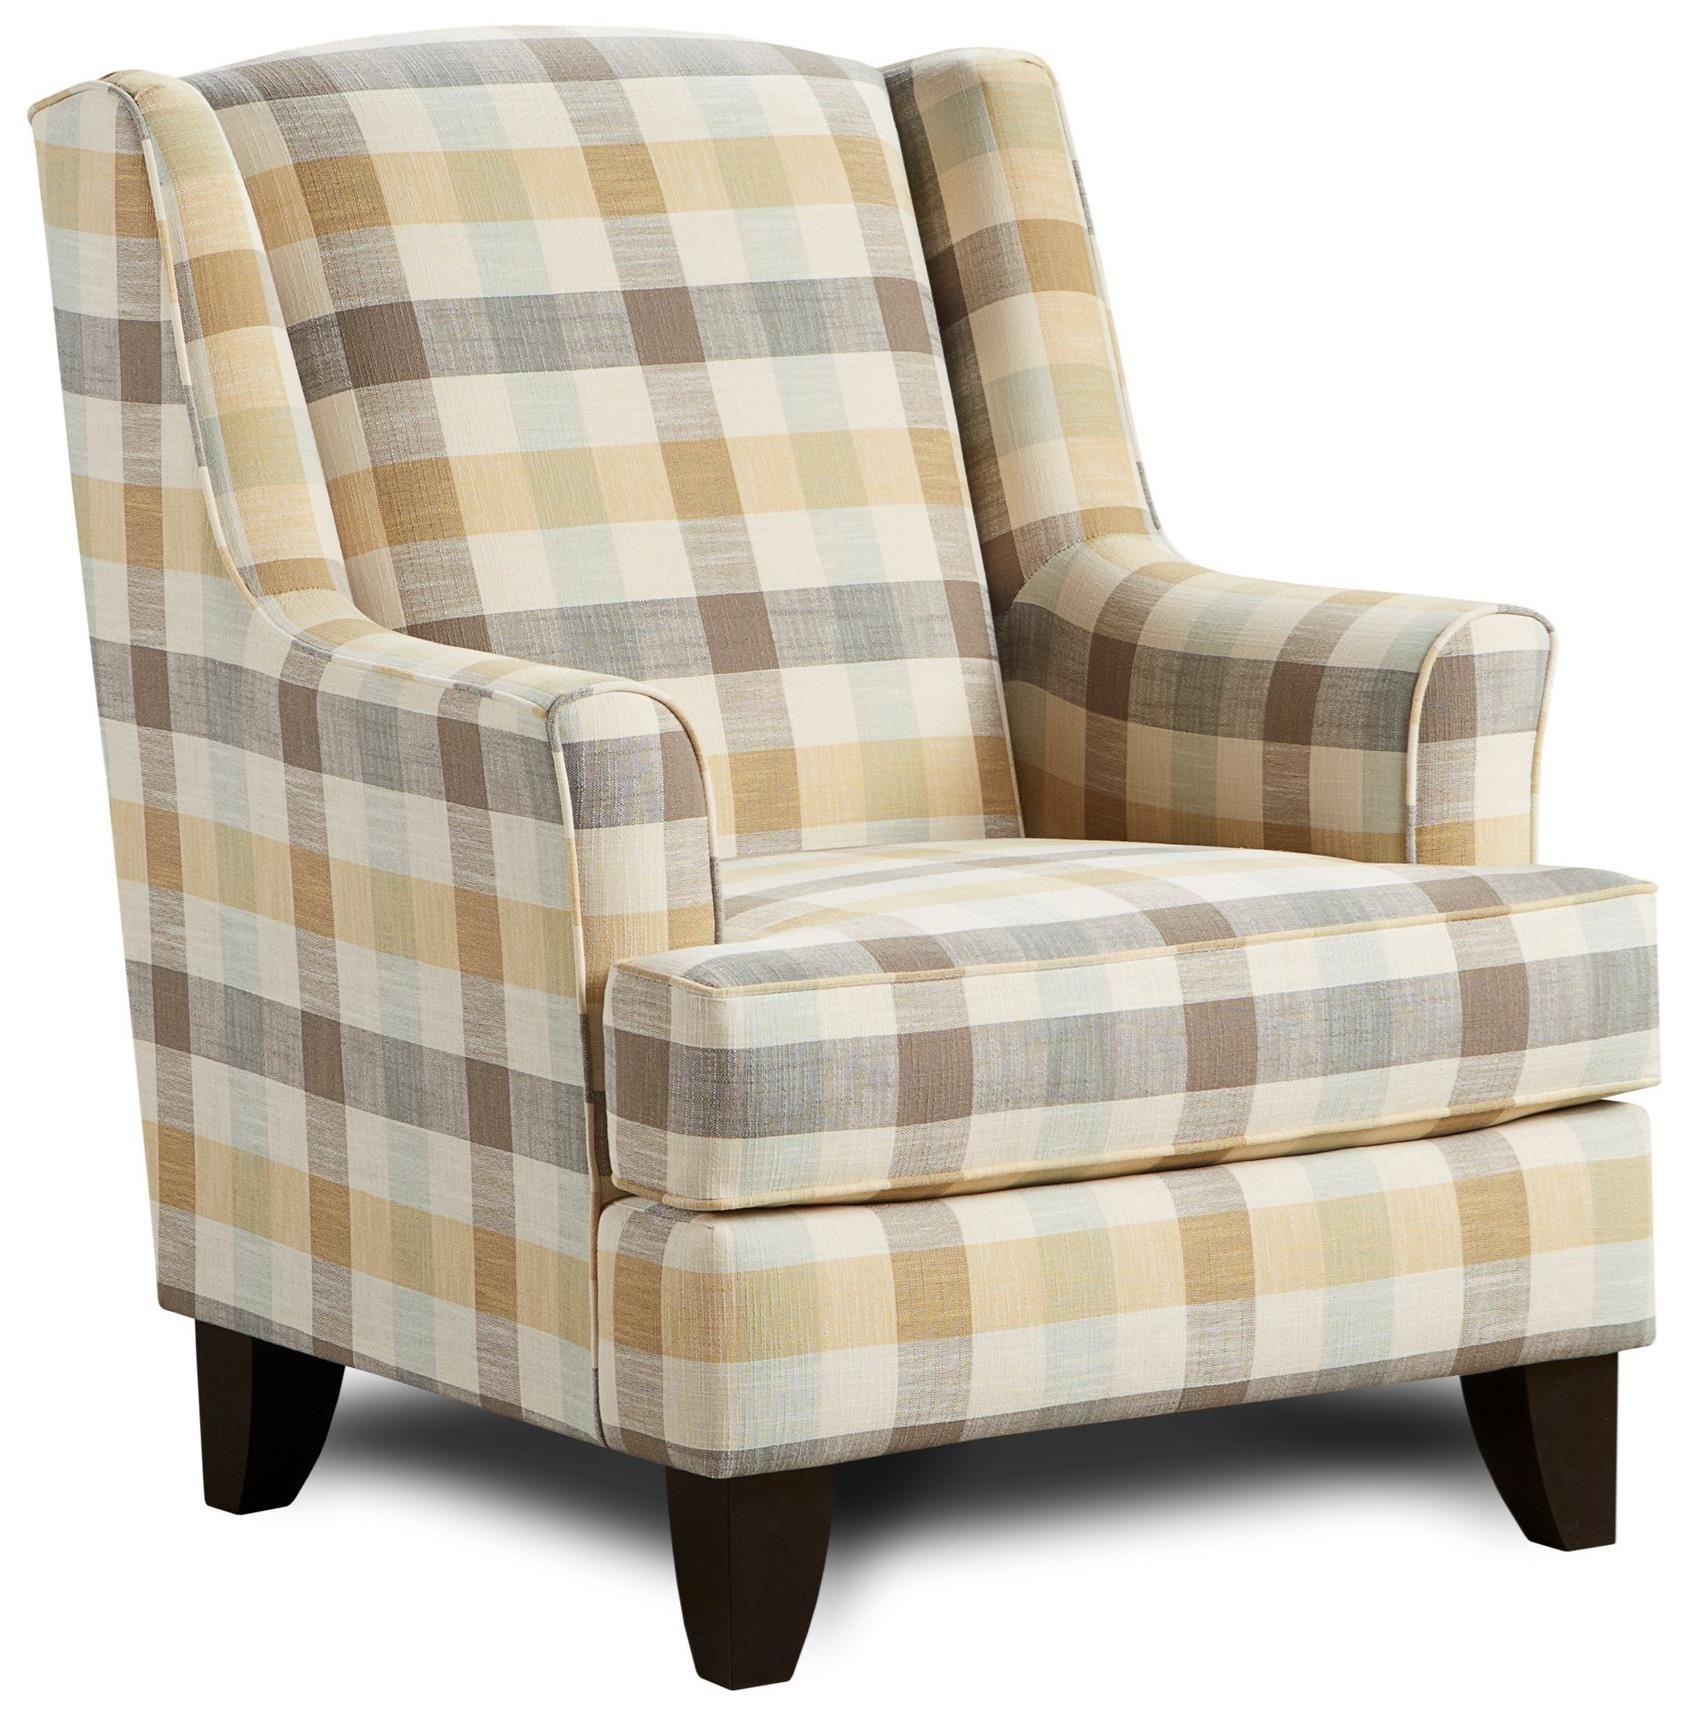 Wing Back Chairs 260 Transitional Wing Back Chair By Fusion Furniture At Steger S Furniture